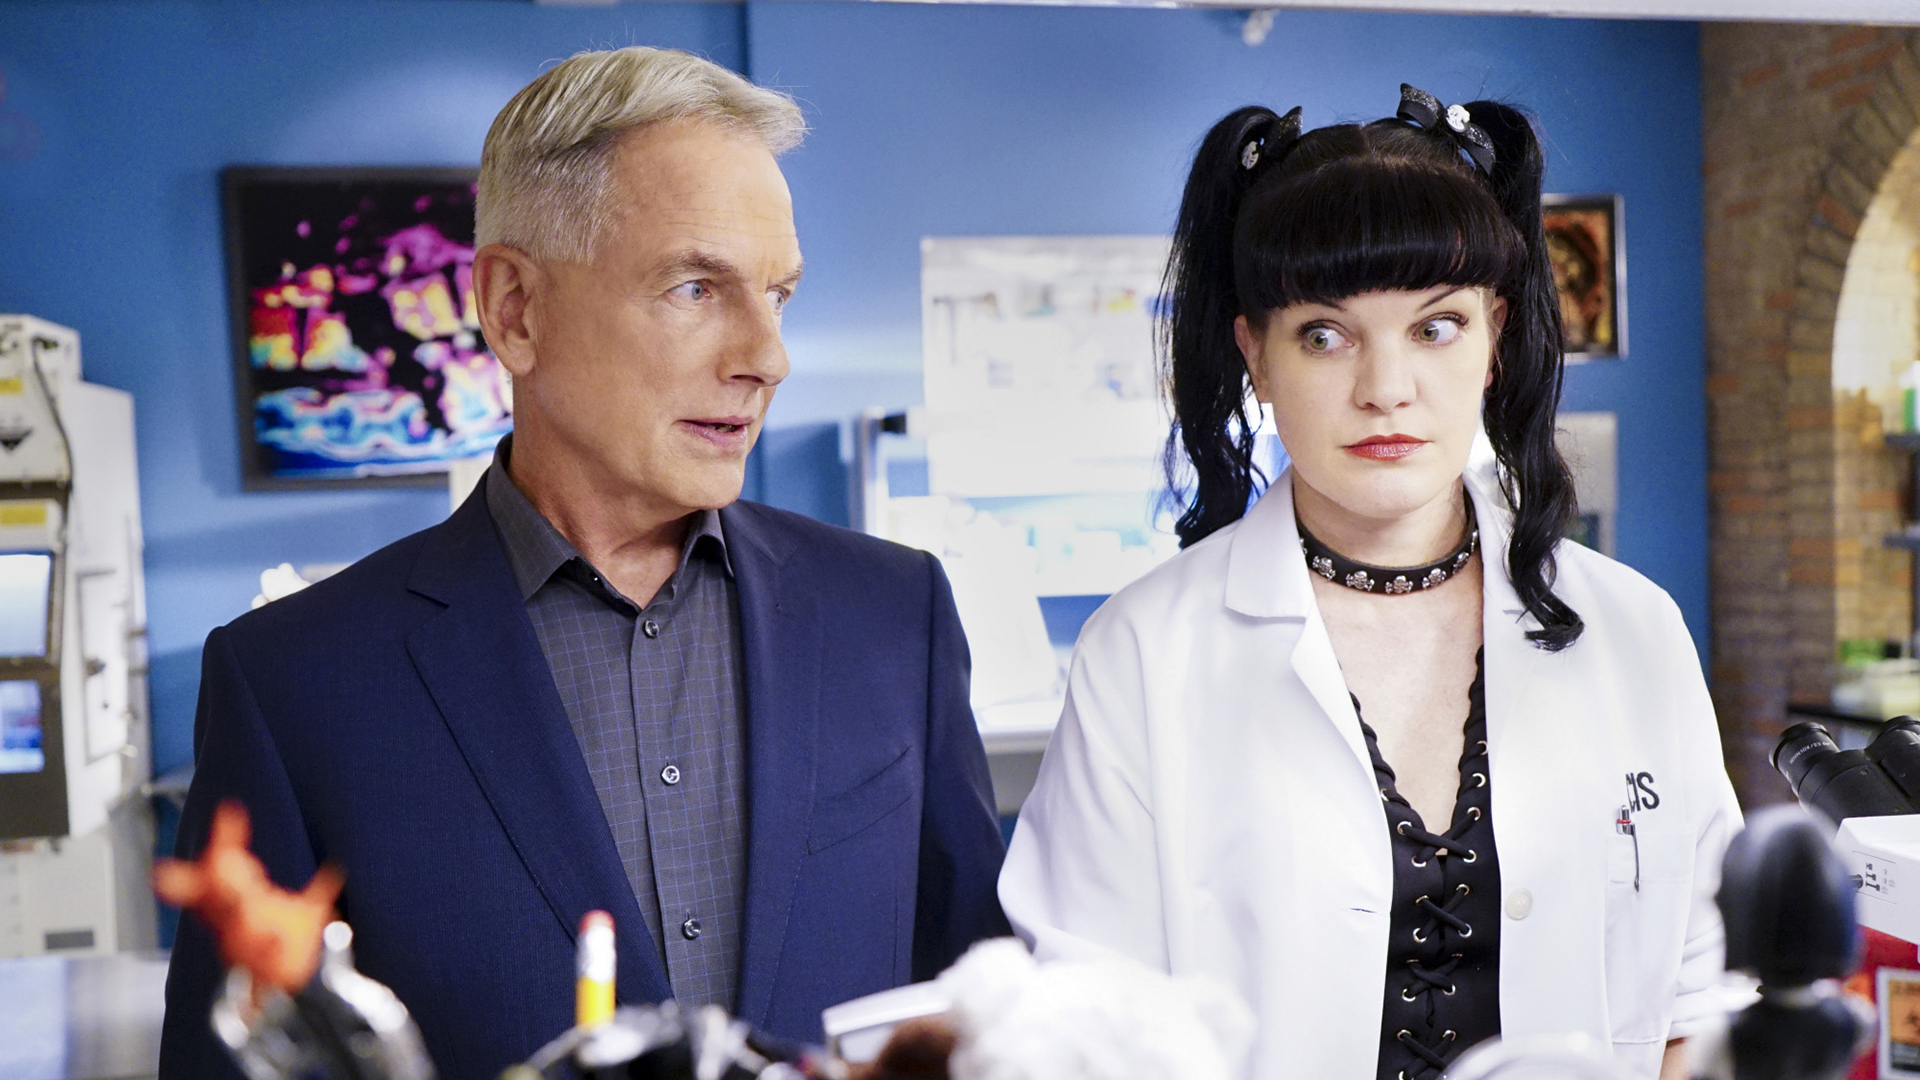 Gibbs gets down to business with Abby.